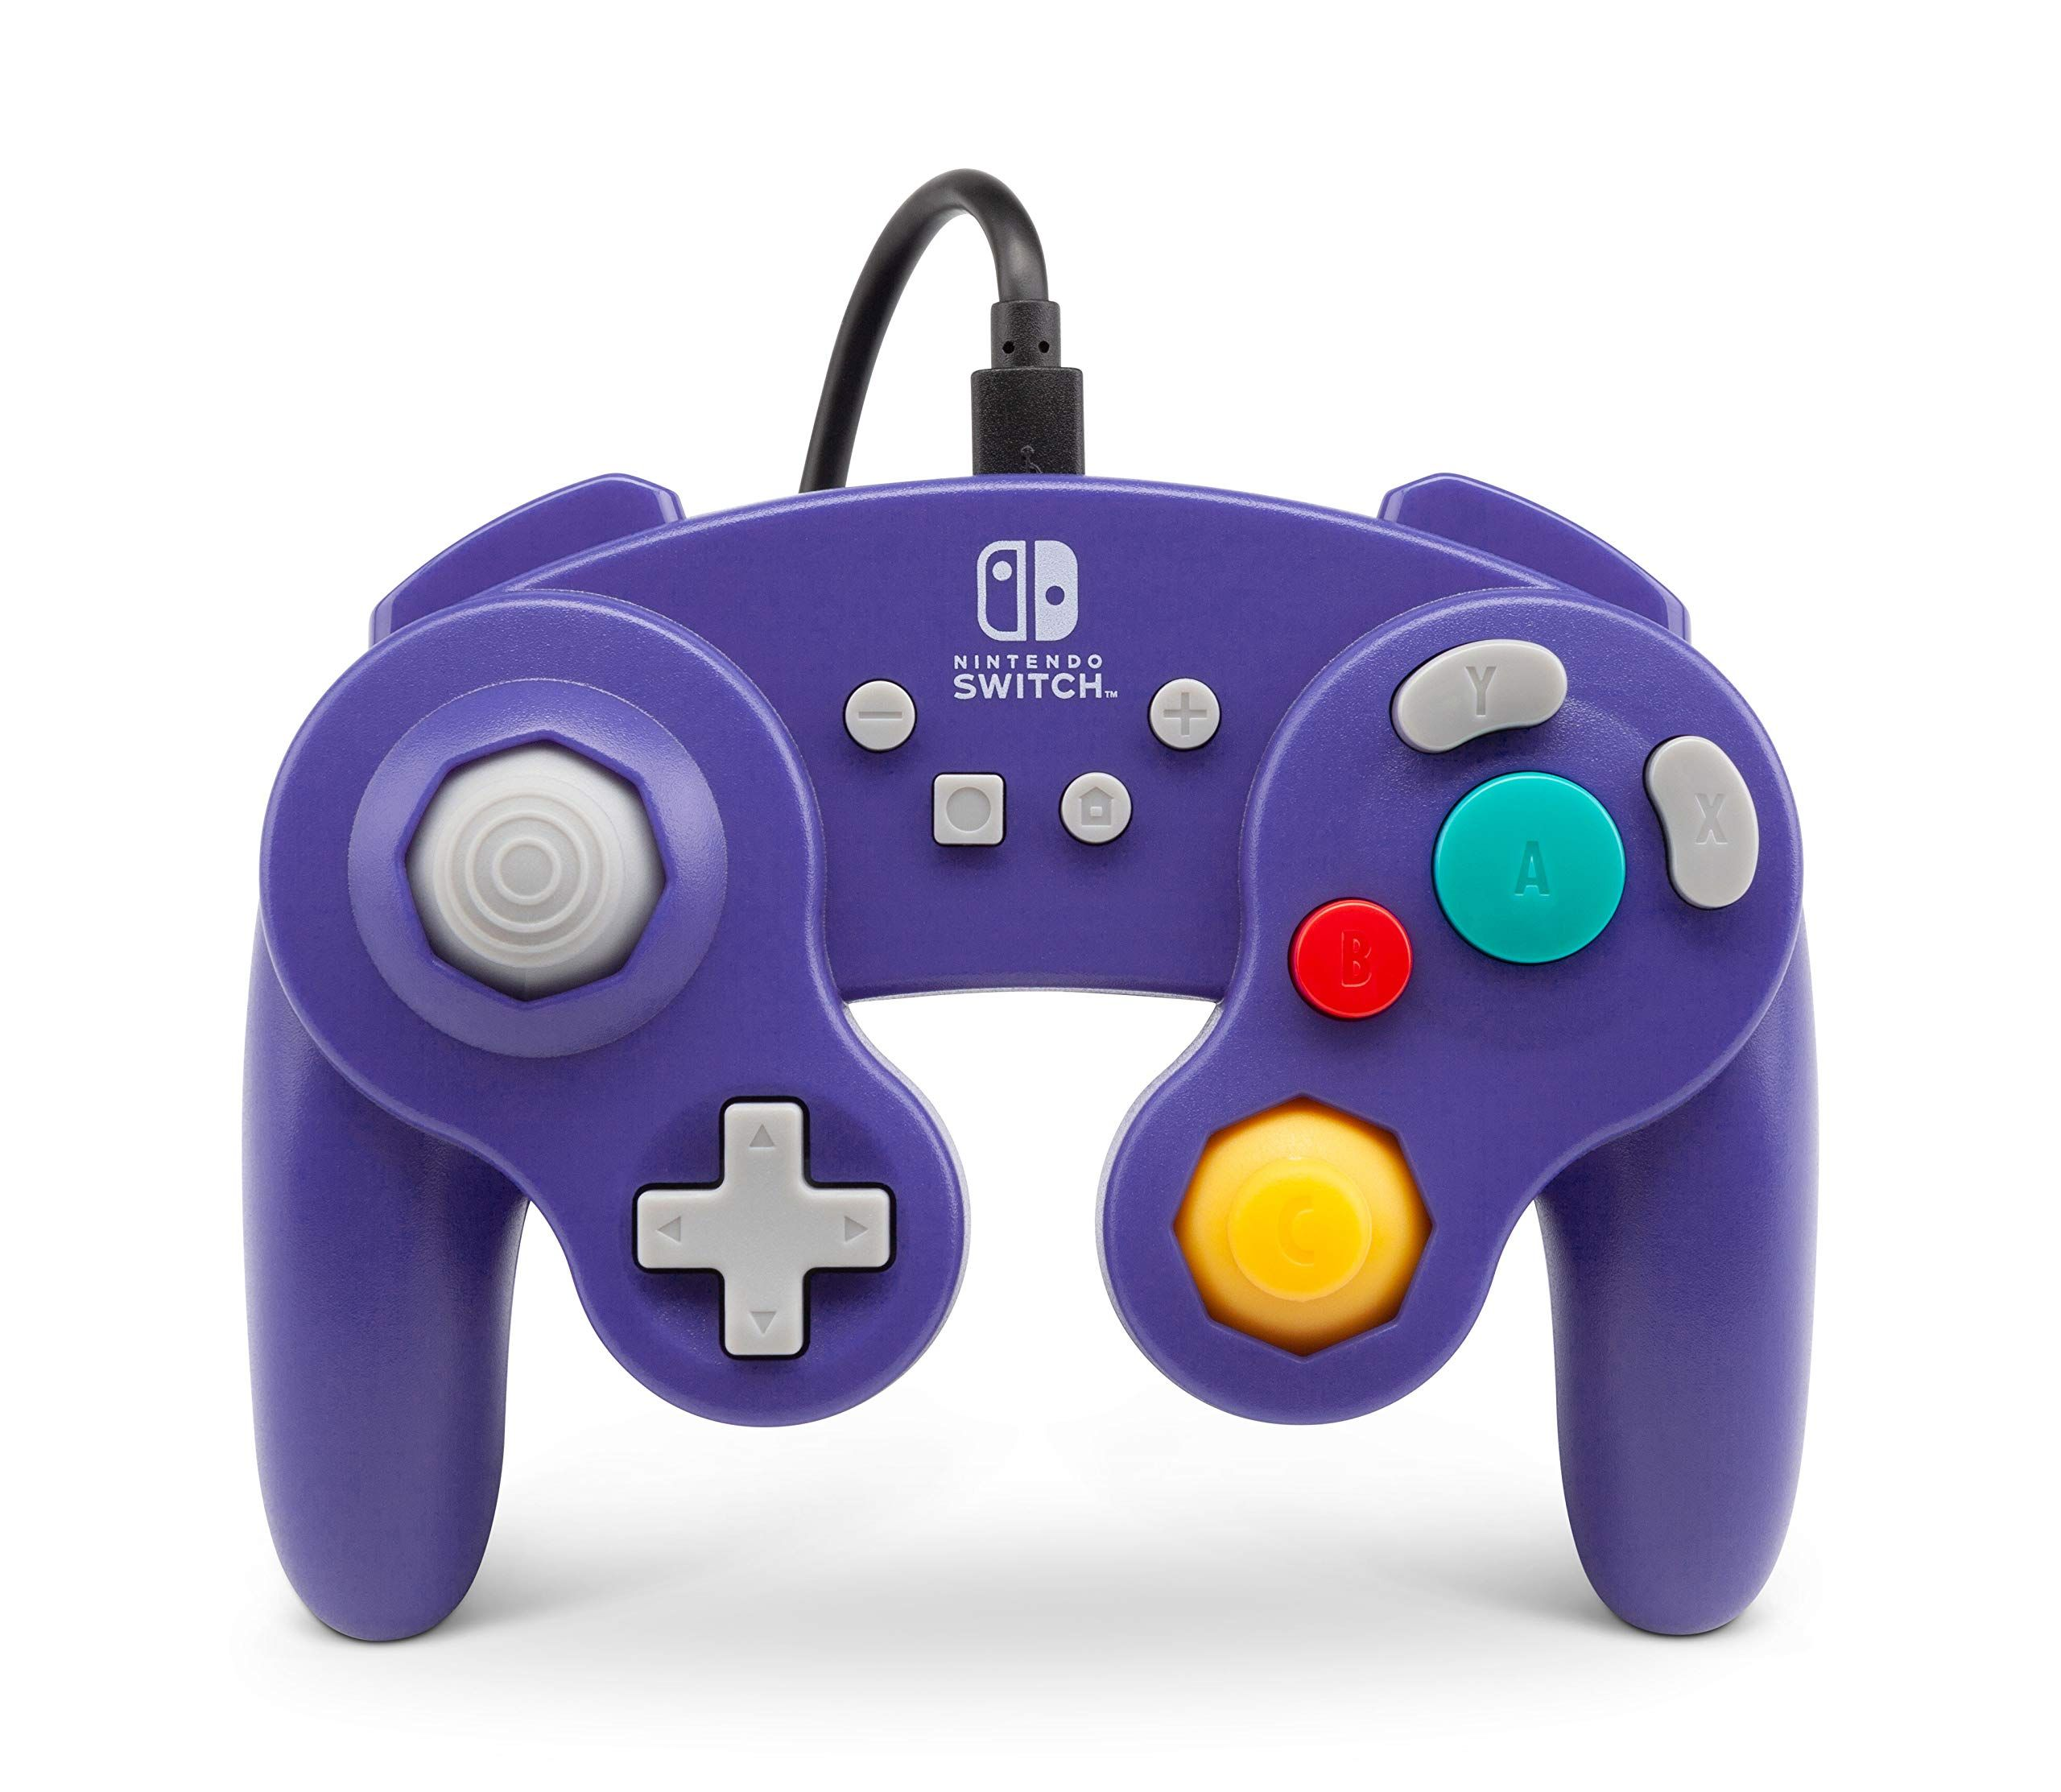 Powera Wired Controller For Nintendo Switch Gamecube Style Purple Nintendo Switch Controller Ni Nintendo Controller Nintendo Switch Gamecube Controller